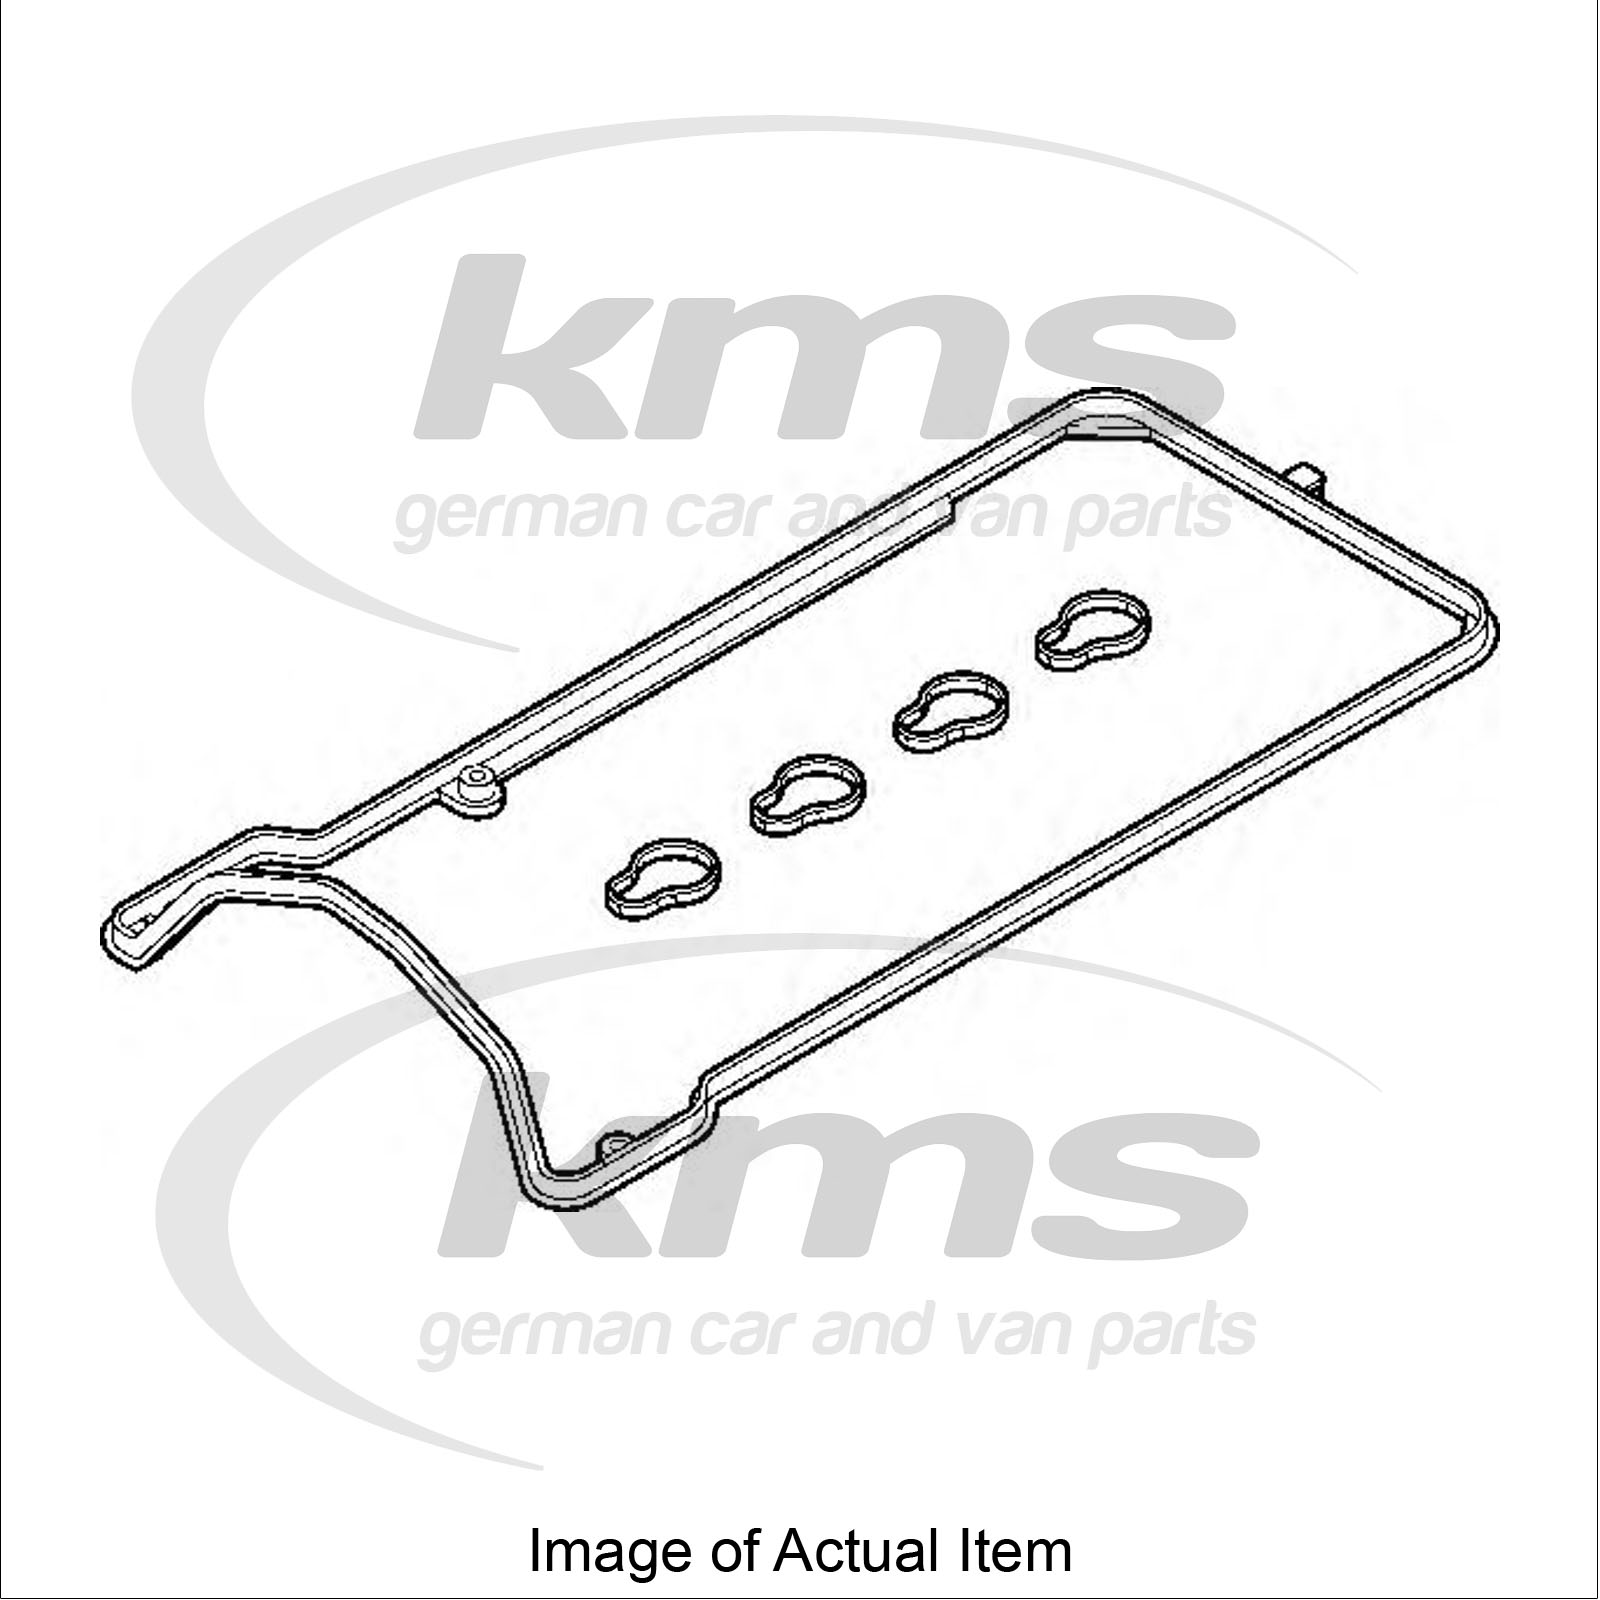 VALVE COVER GASKET MERCEDES SPRINTER 3-t Box (906) 215 CDI